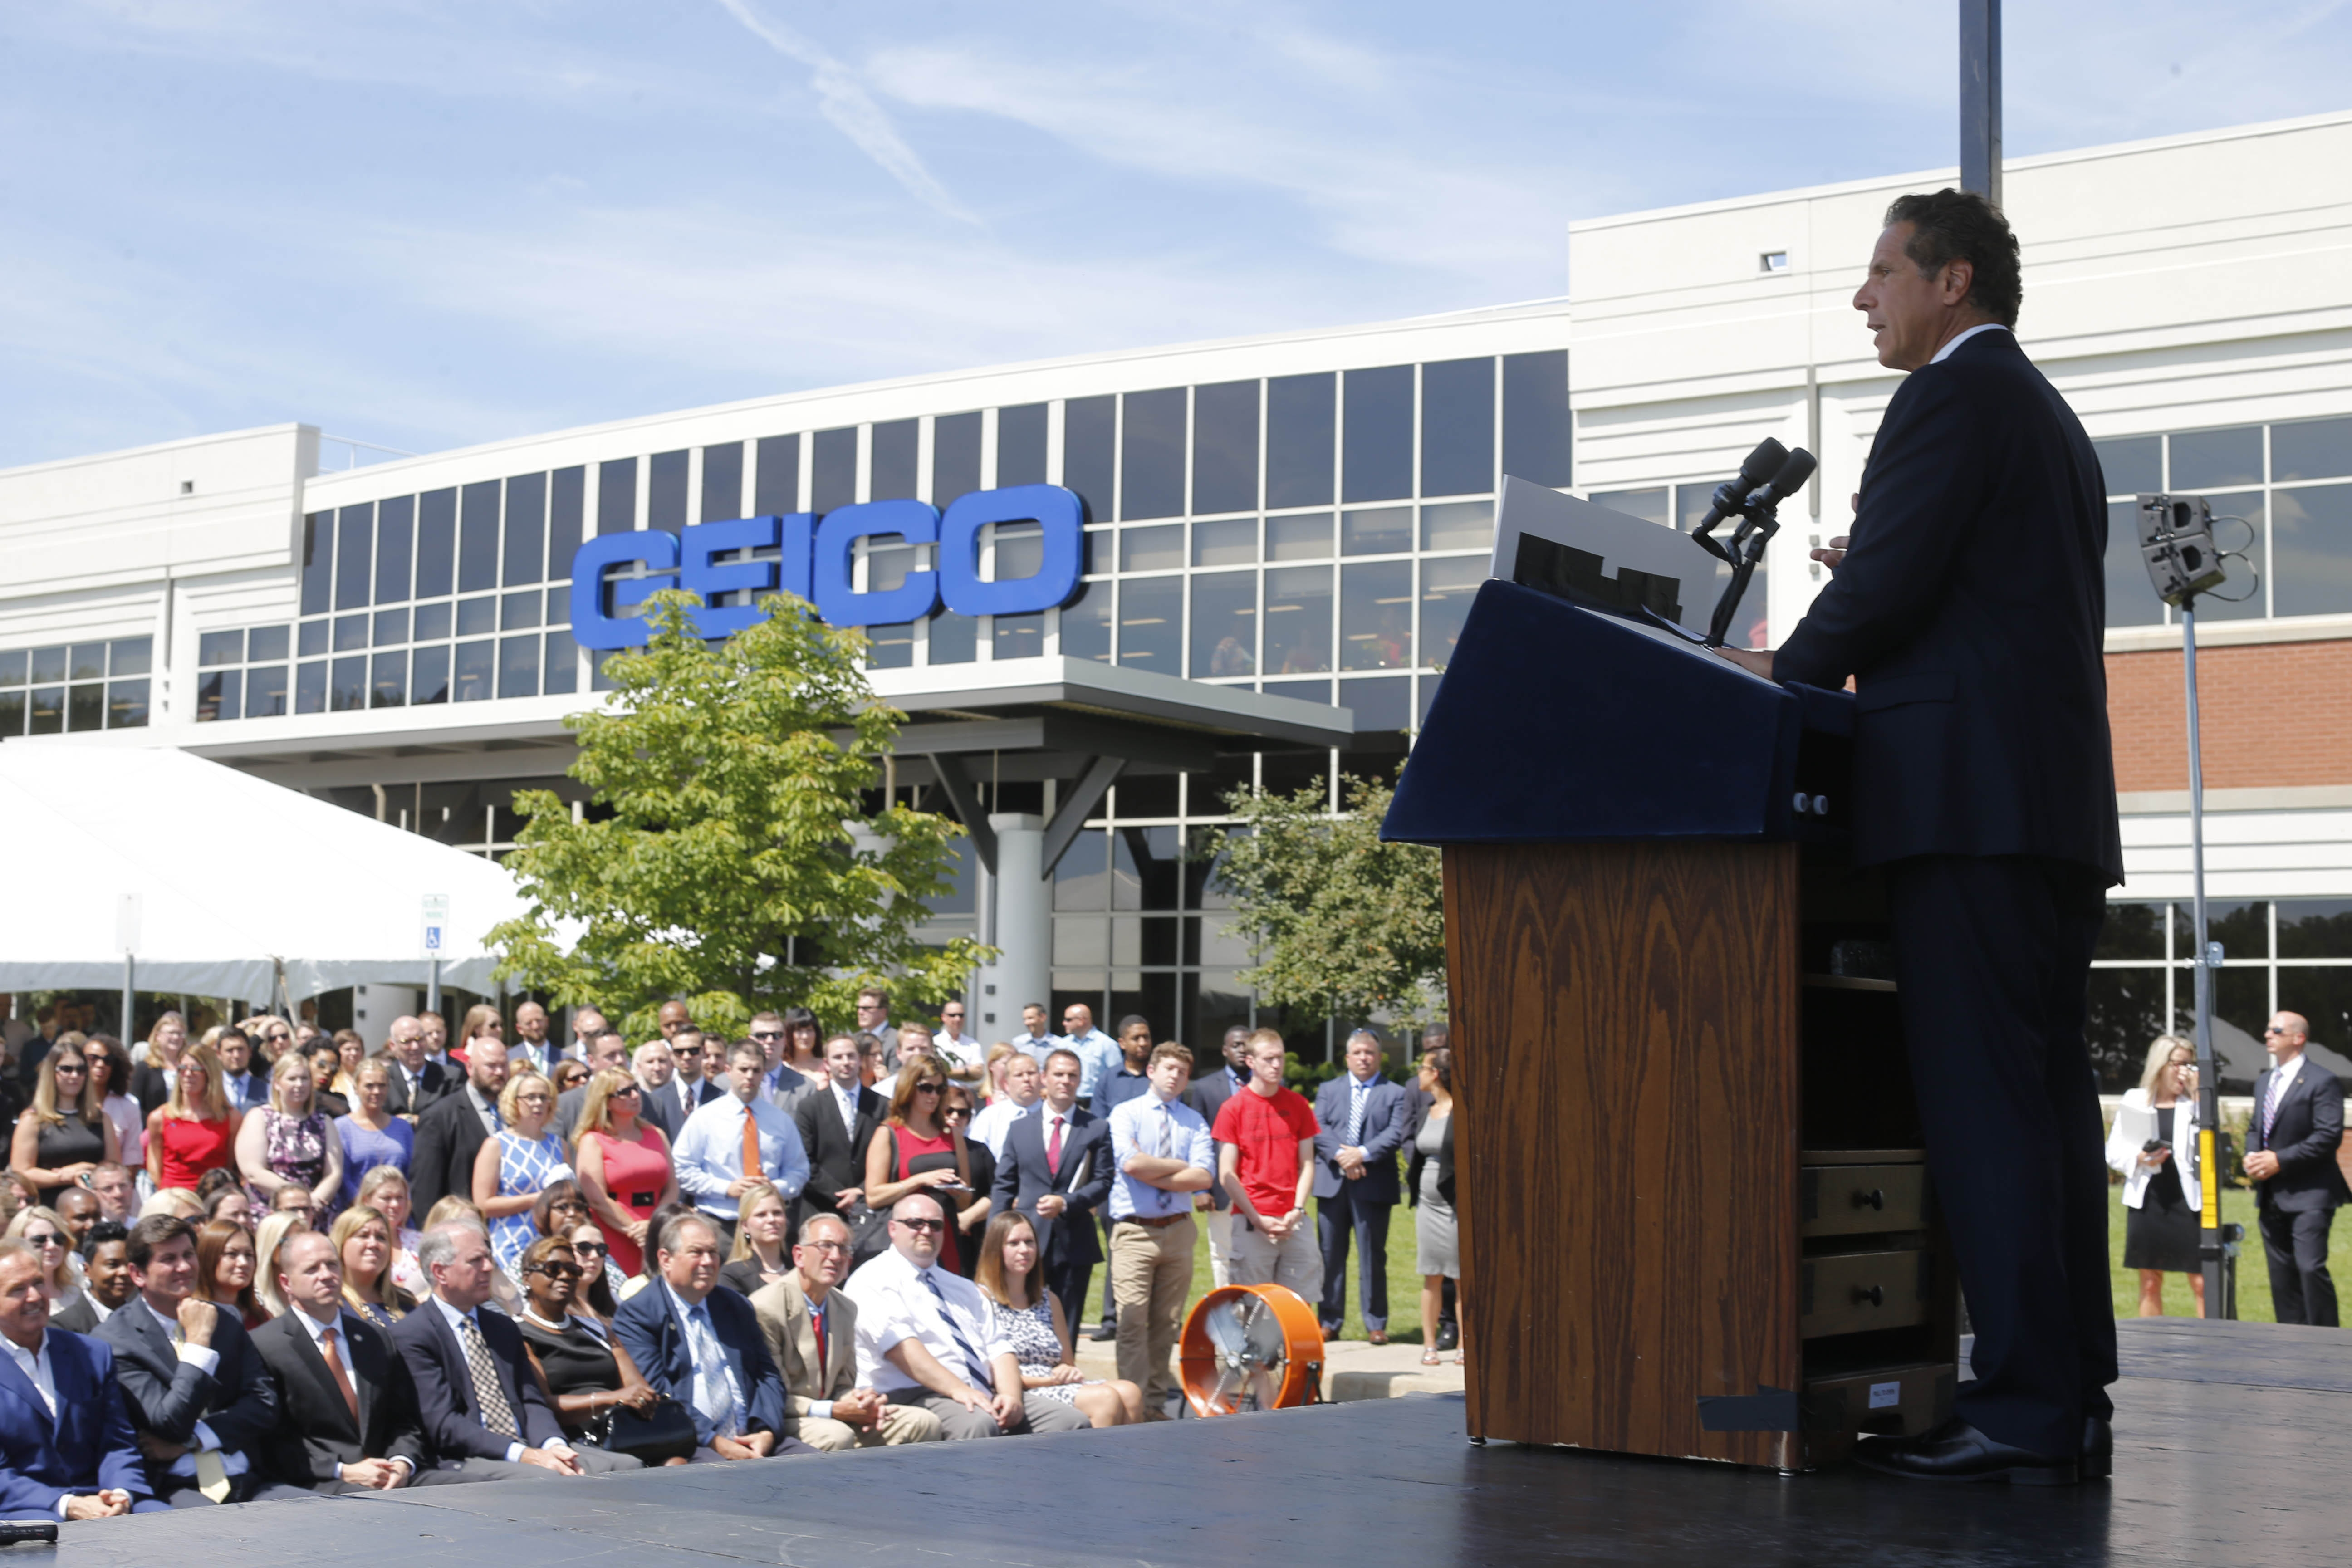 New York Gov. Andrew Cuomo speaks during an event to announce that Geico will add 600 new jobs to its call center in Amherst. (Derek Gee/Buffalo News)